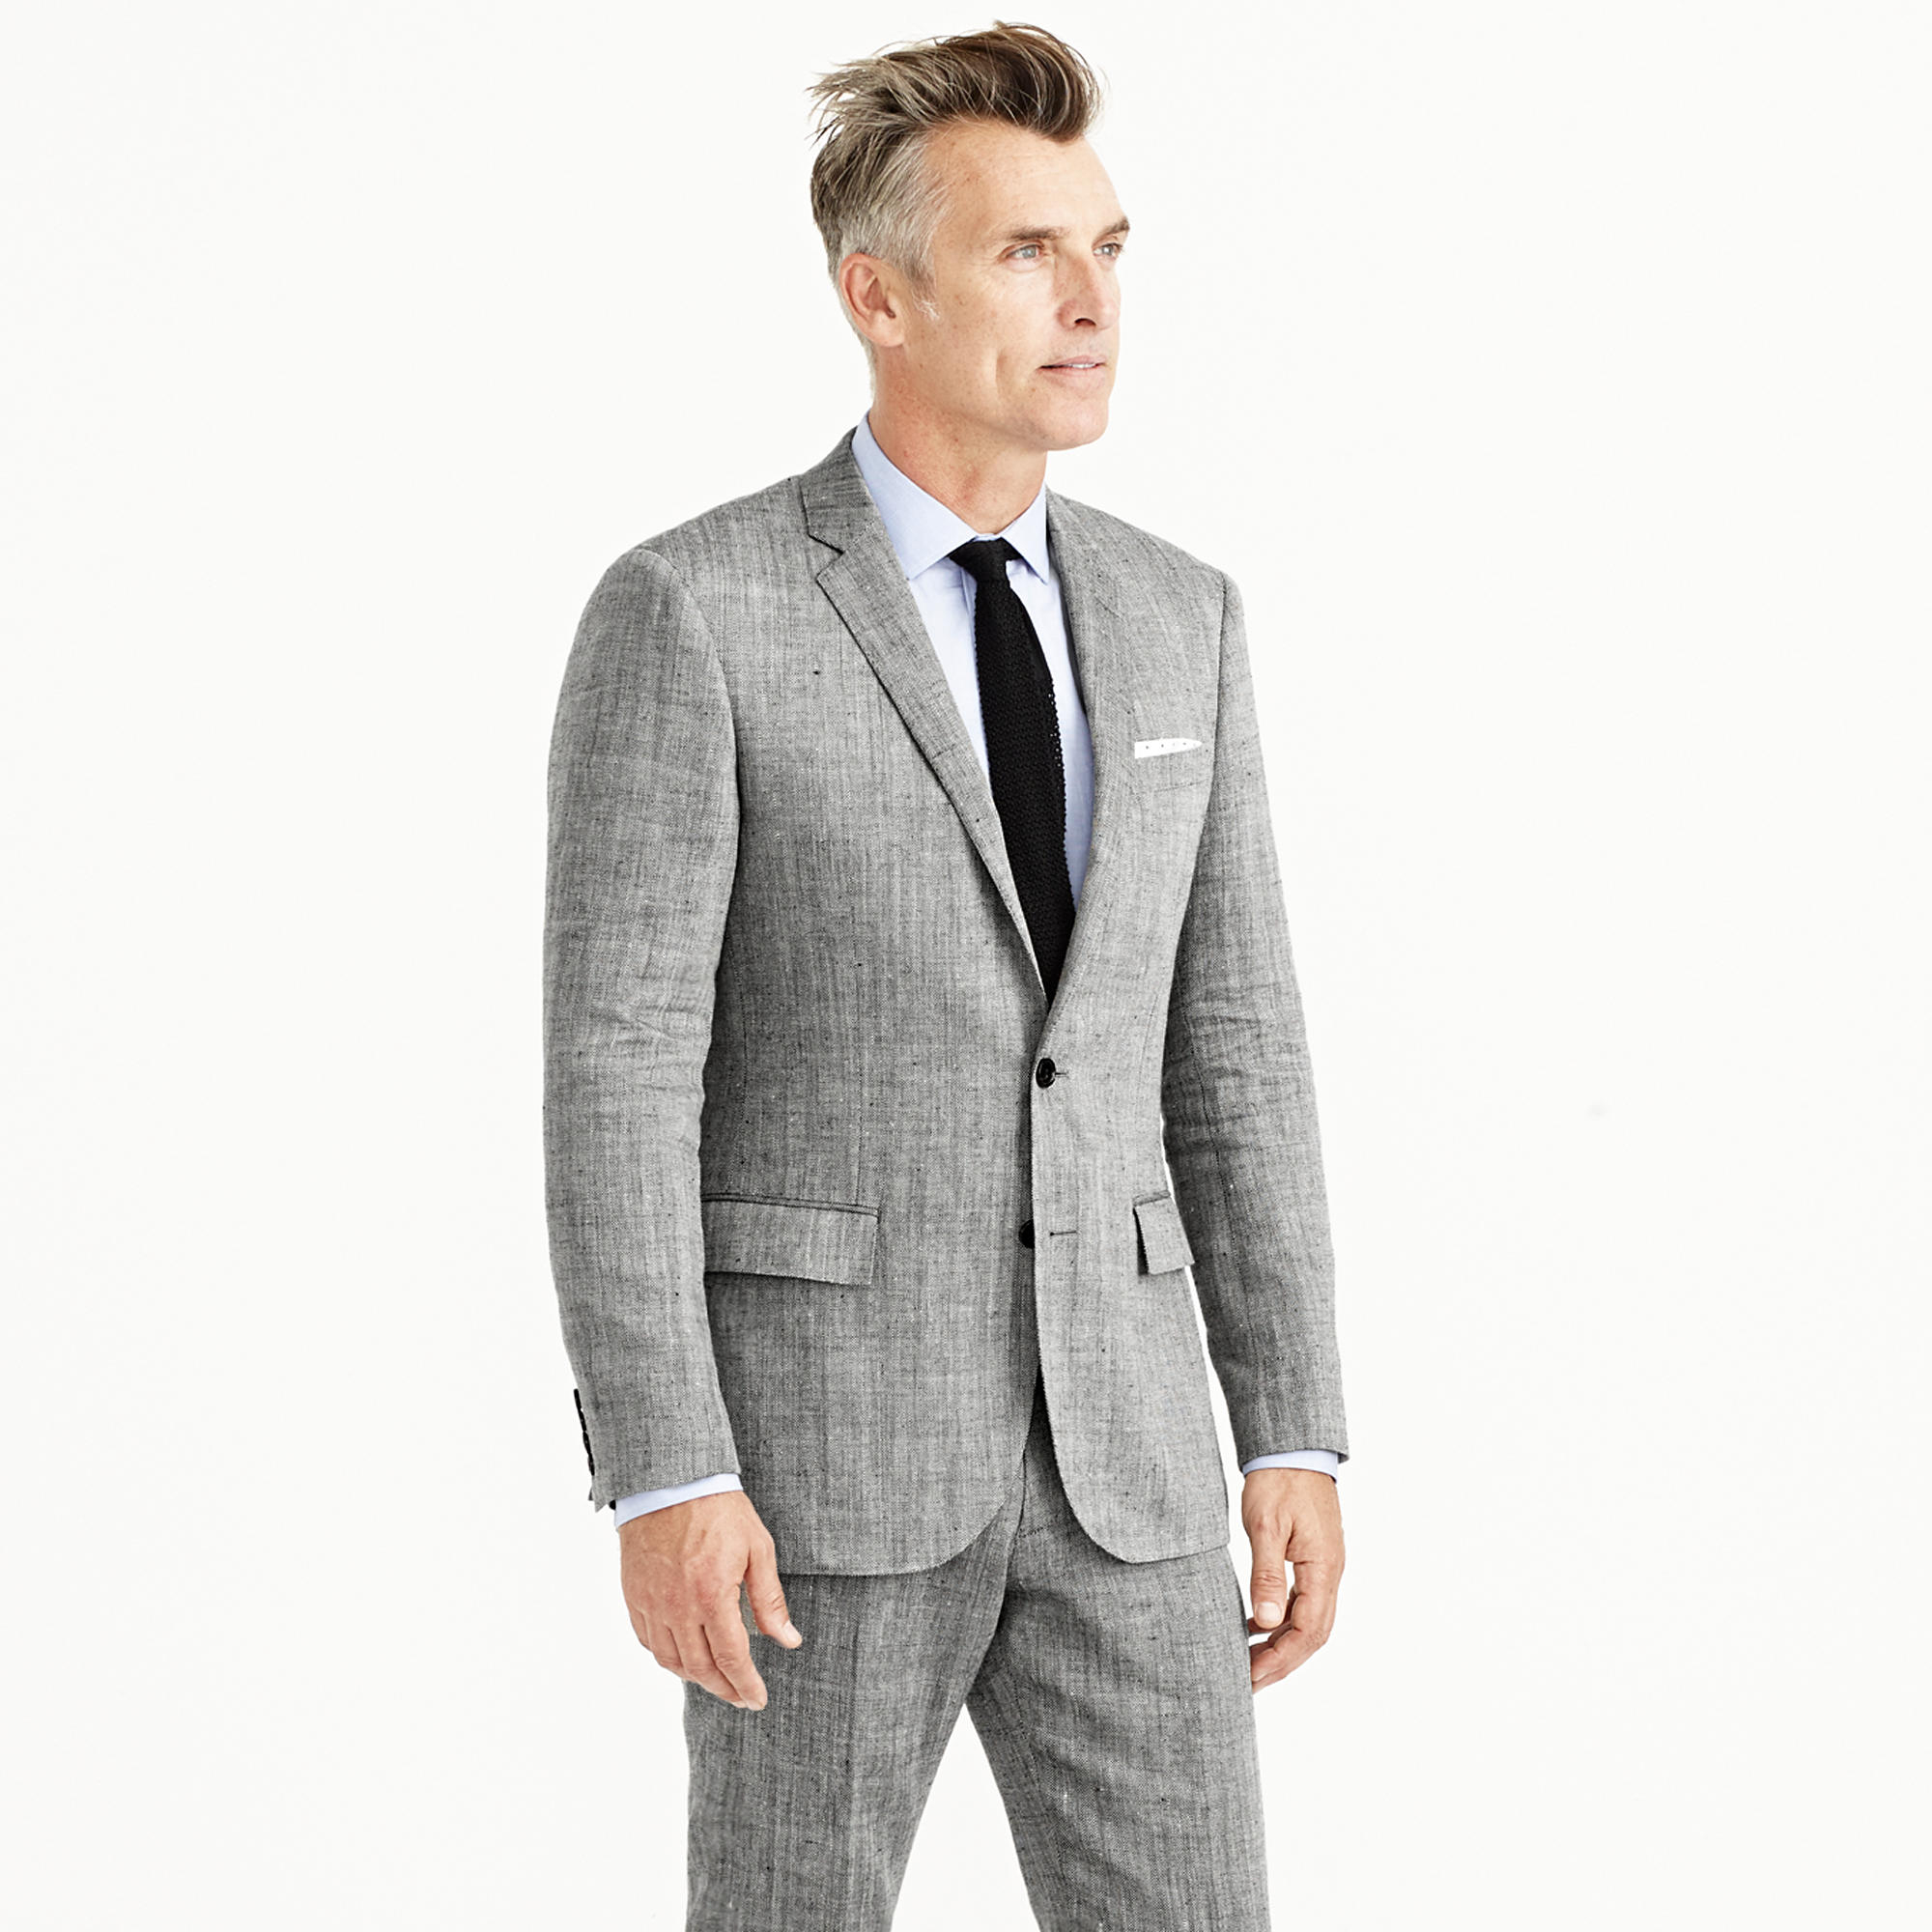 J.crew Ludlow Suit Jacket In Herringbone Italian Linen-silk in